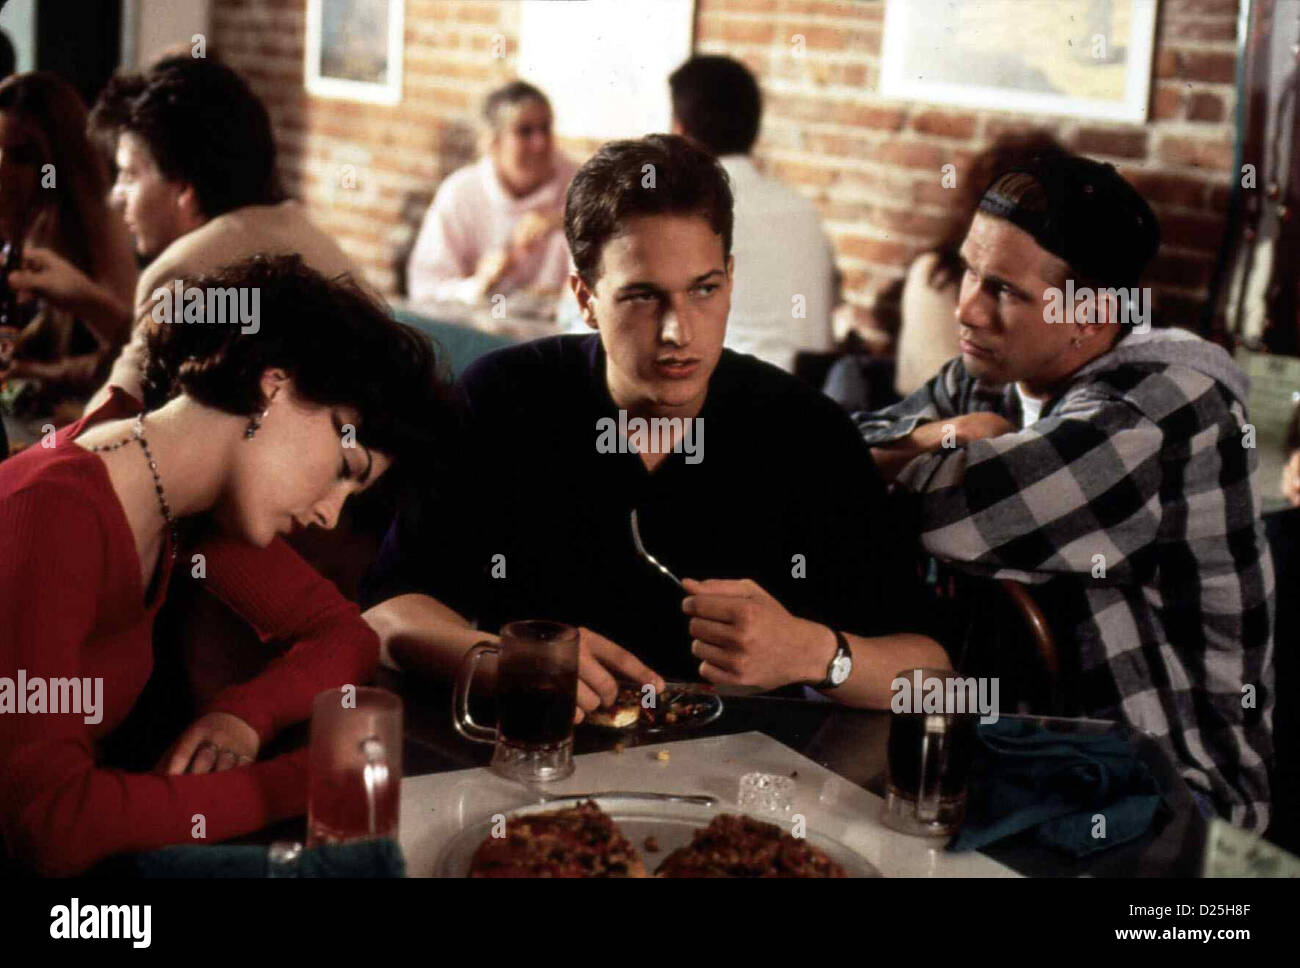 Threesome movie josh charles photo galleries